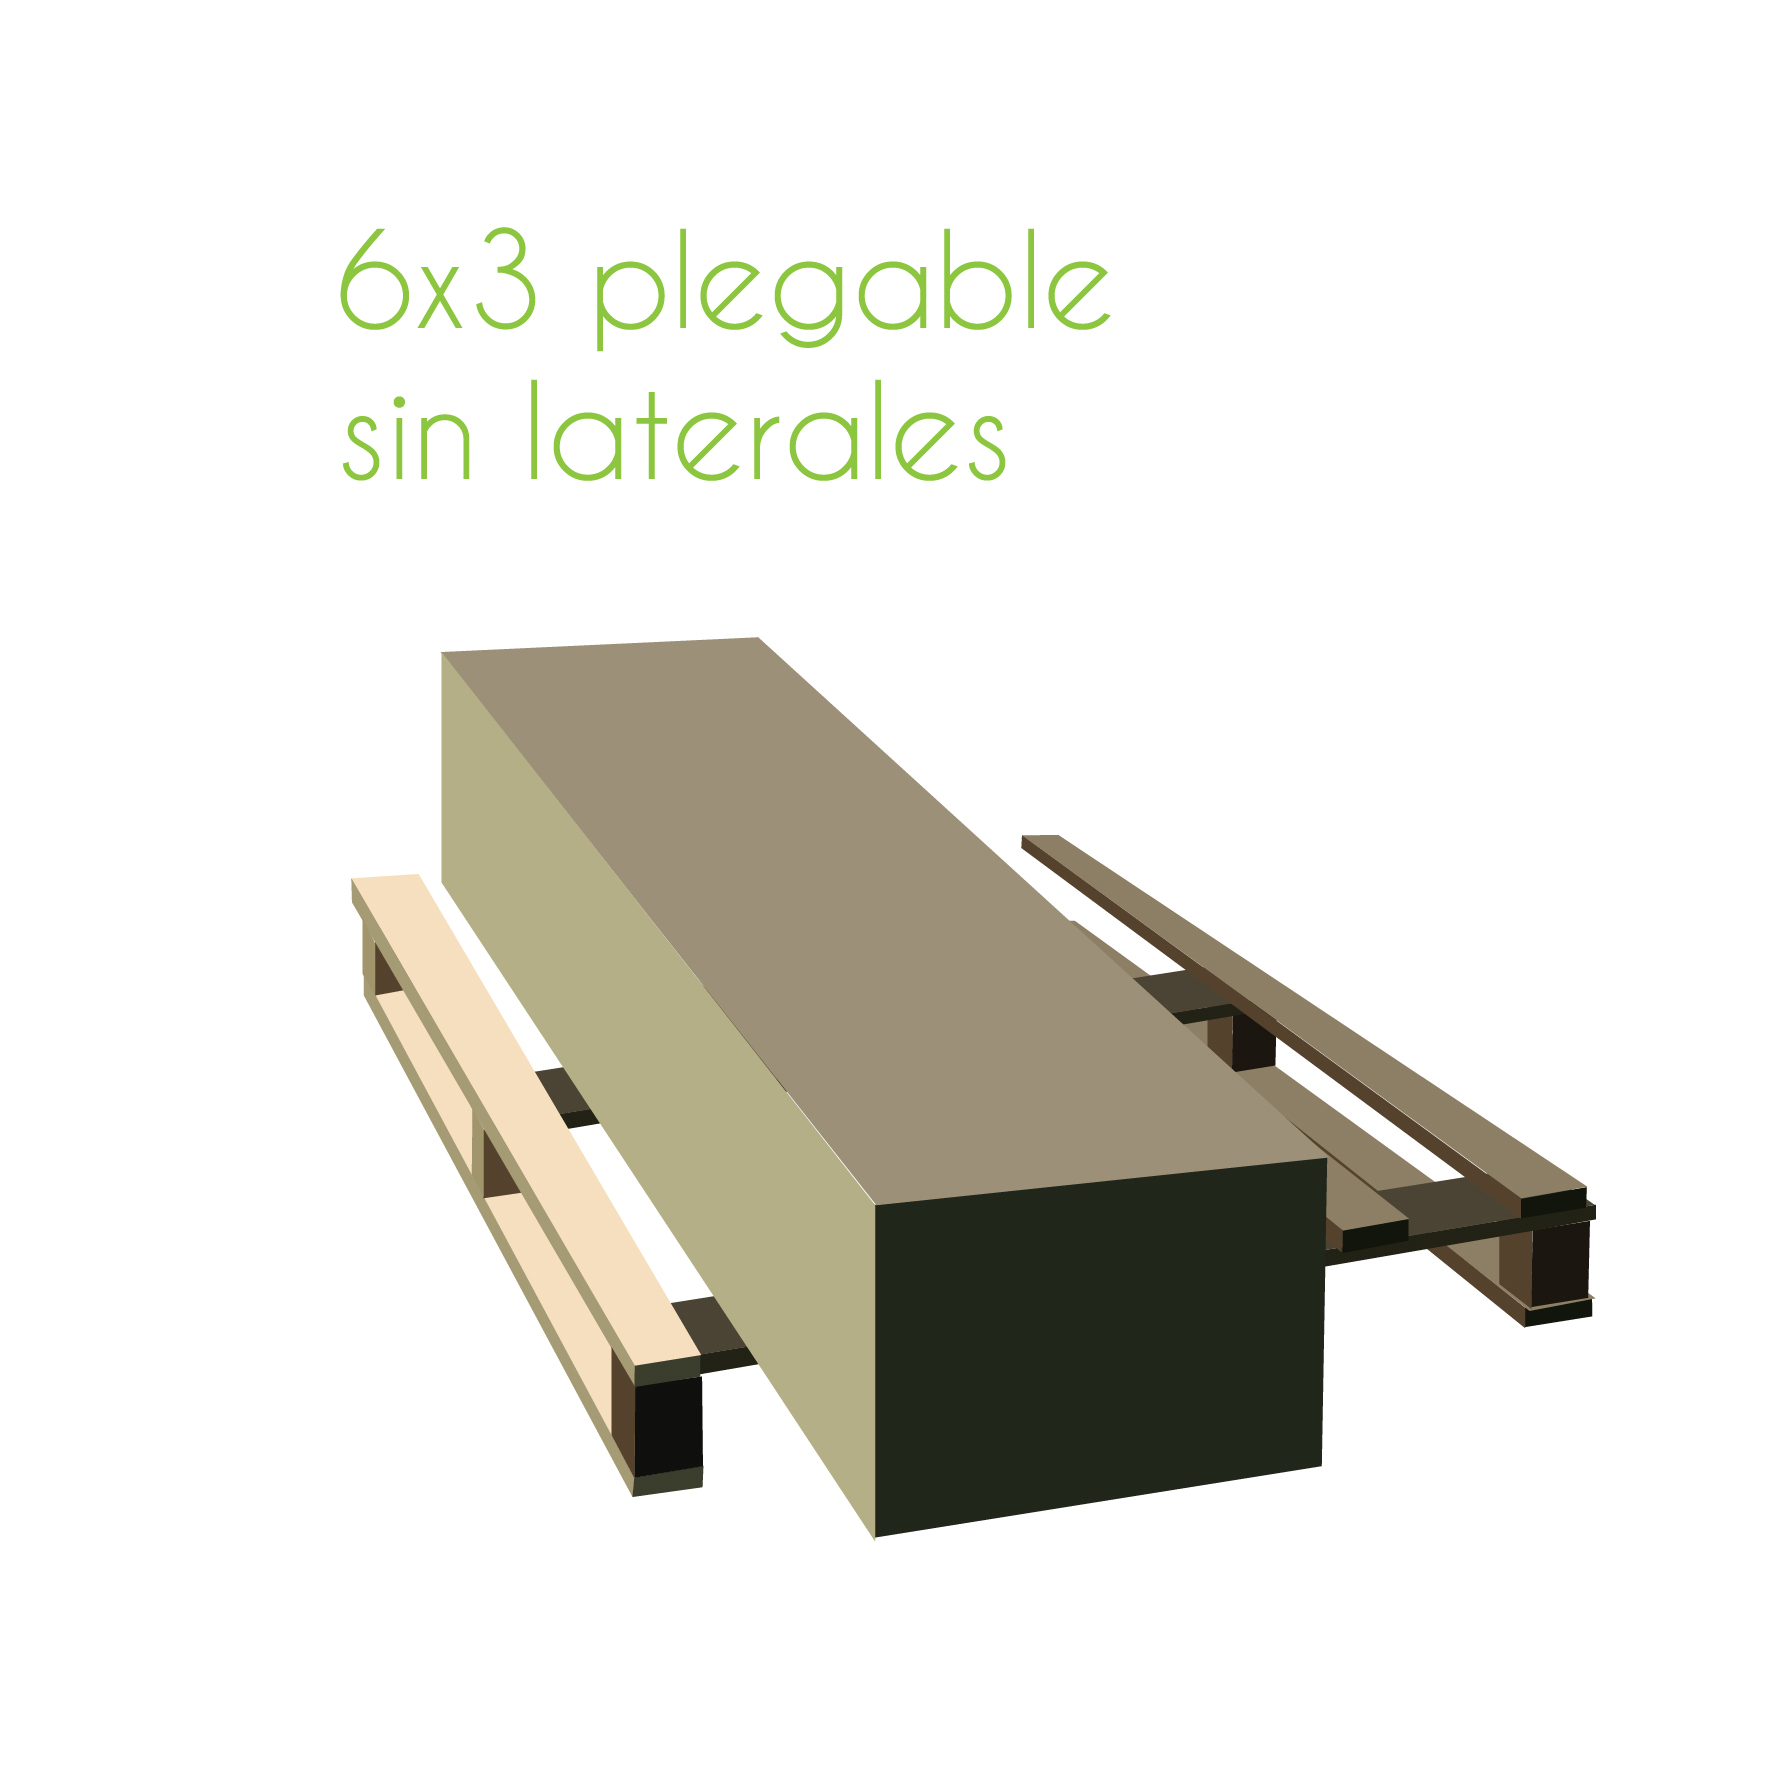 paletización carpa 6x3 plegable